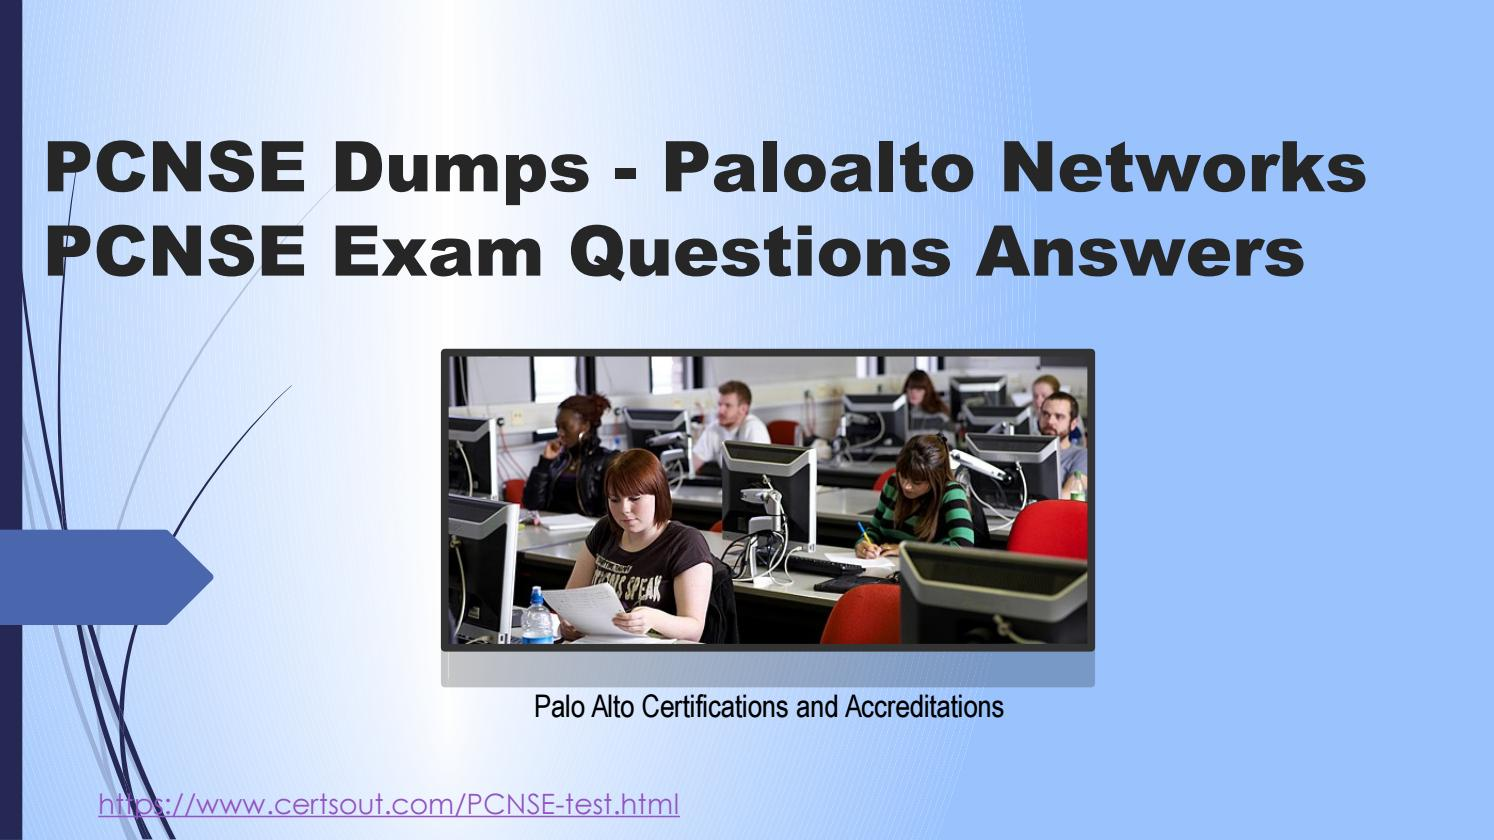 Certsout PCNSE Exam Questions by certsout - issuu